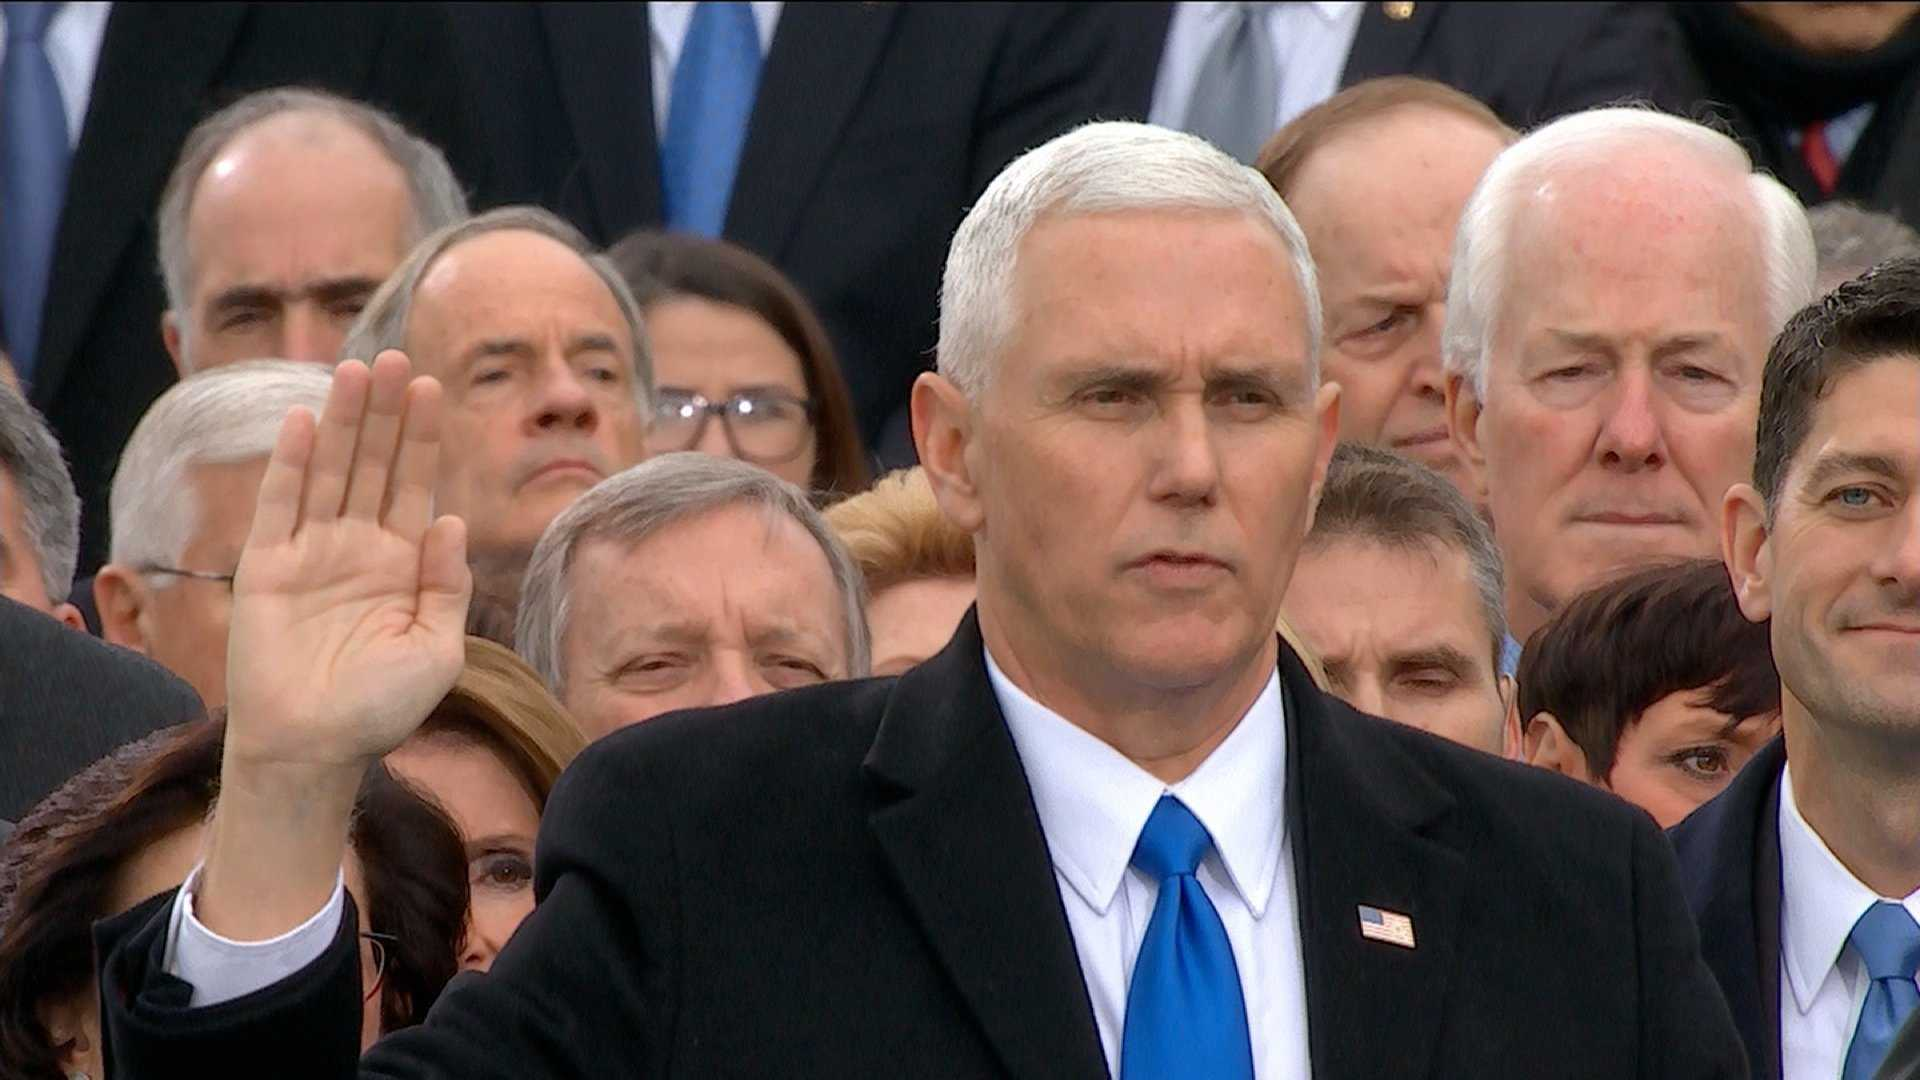 Mike Pence takes the Oath of Office to become Vice President of the America at the Capitol on Jan. 20, 2017.